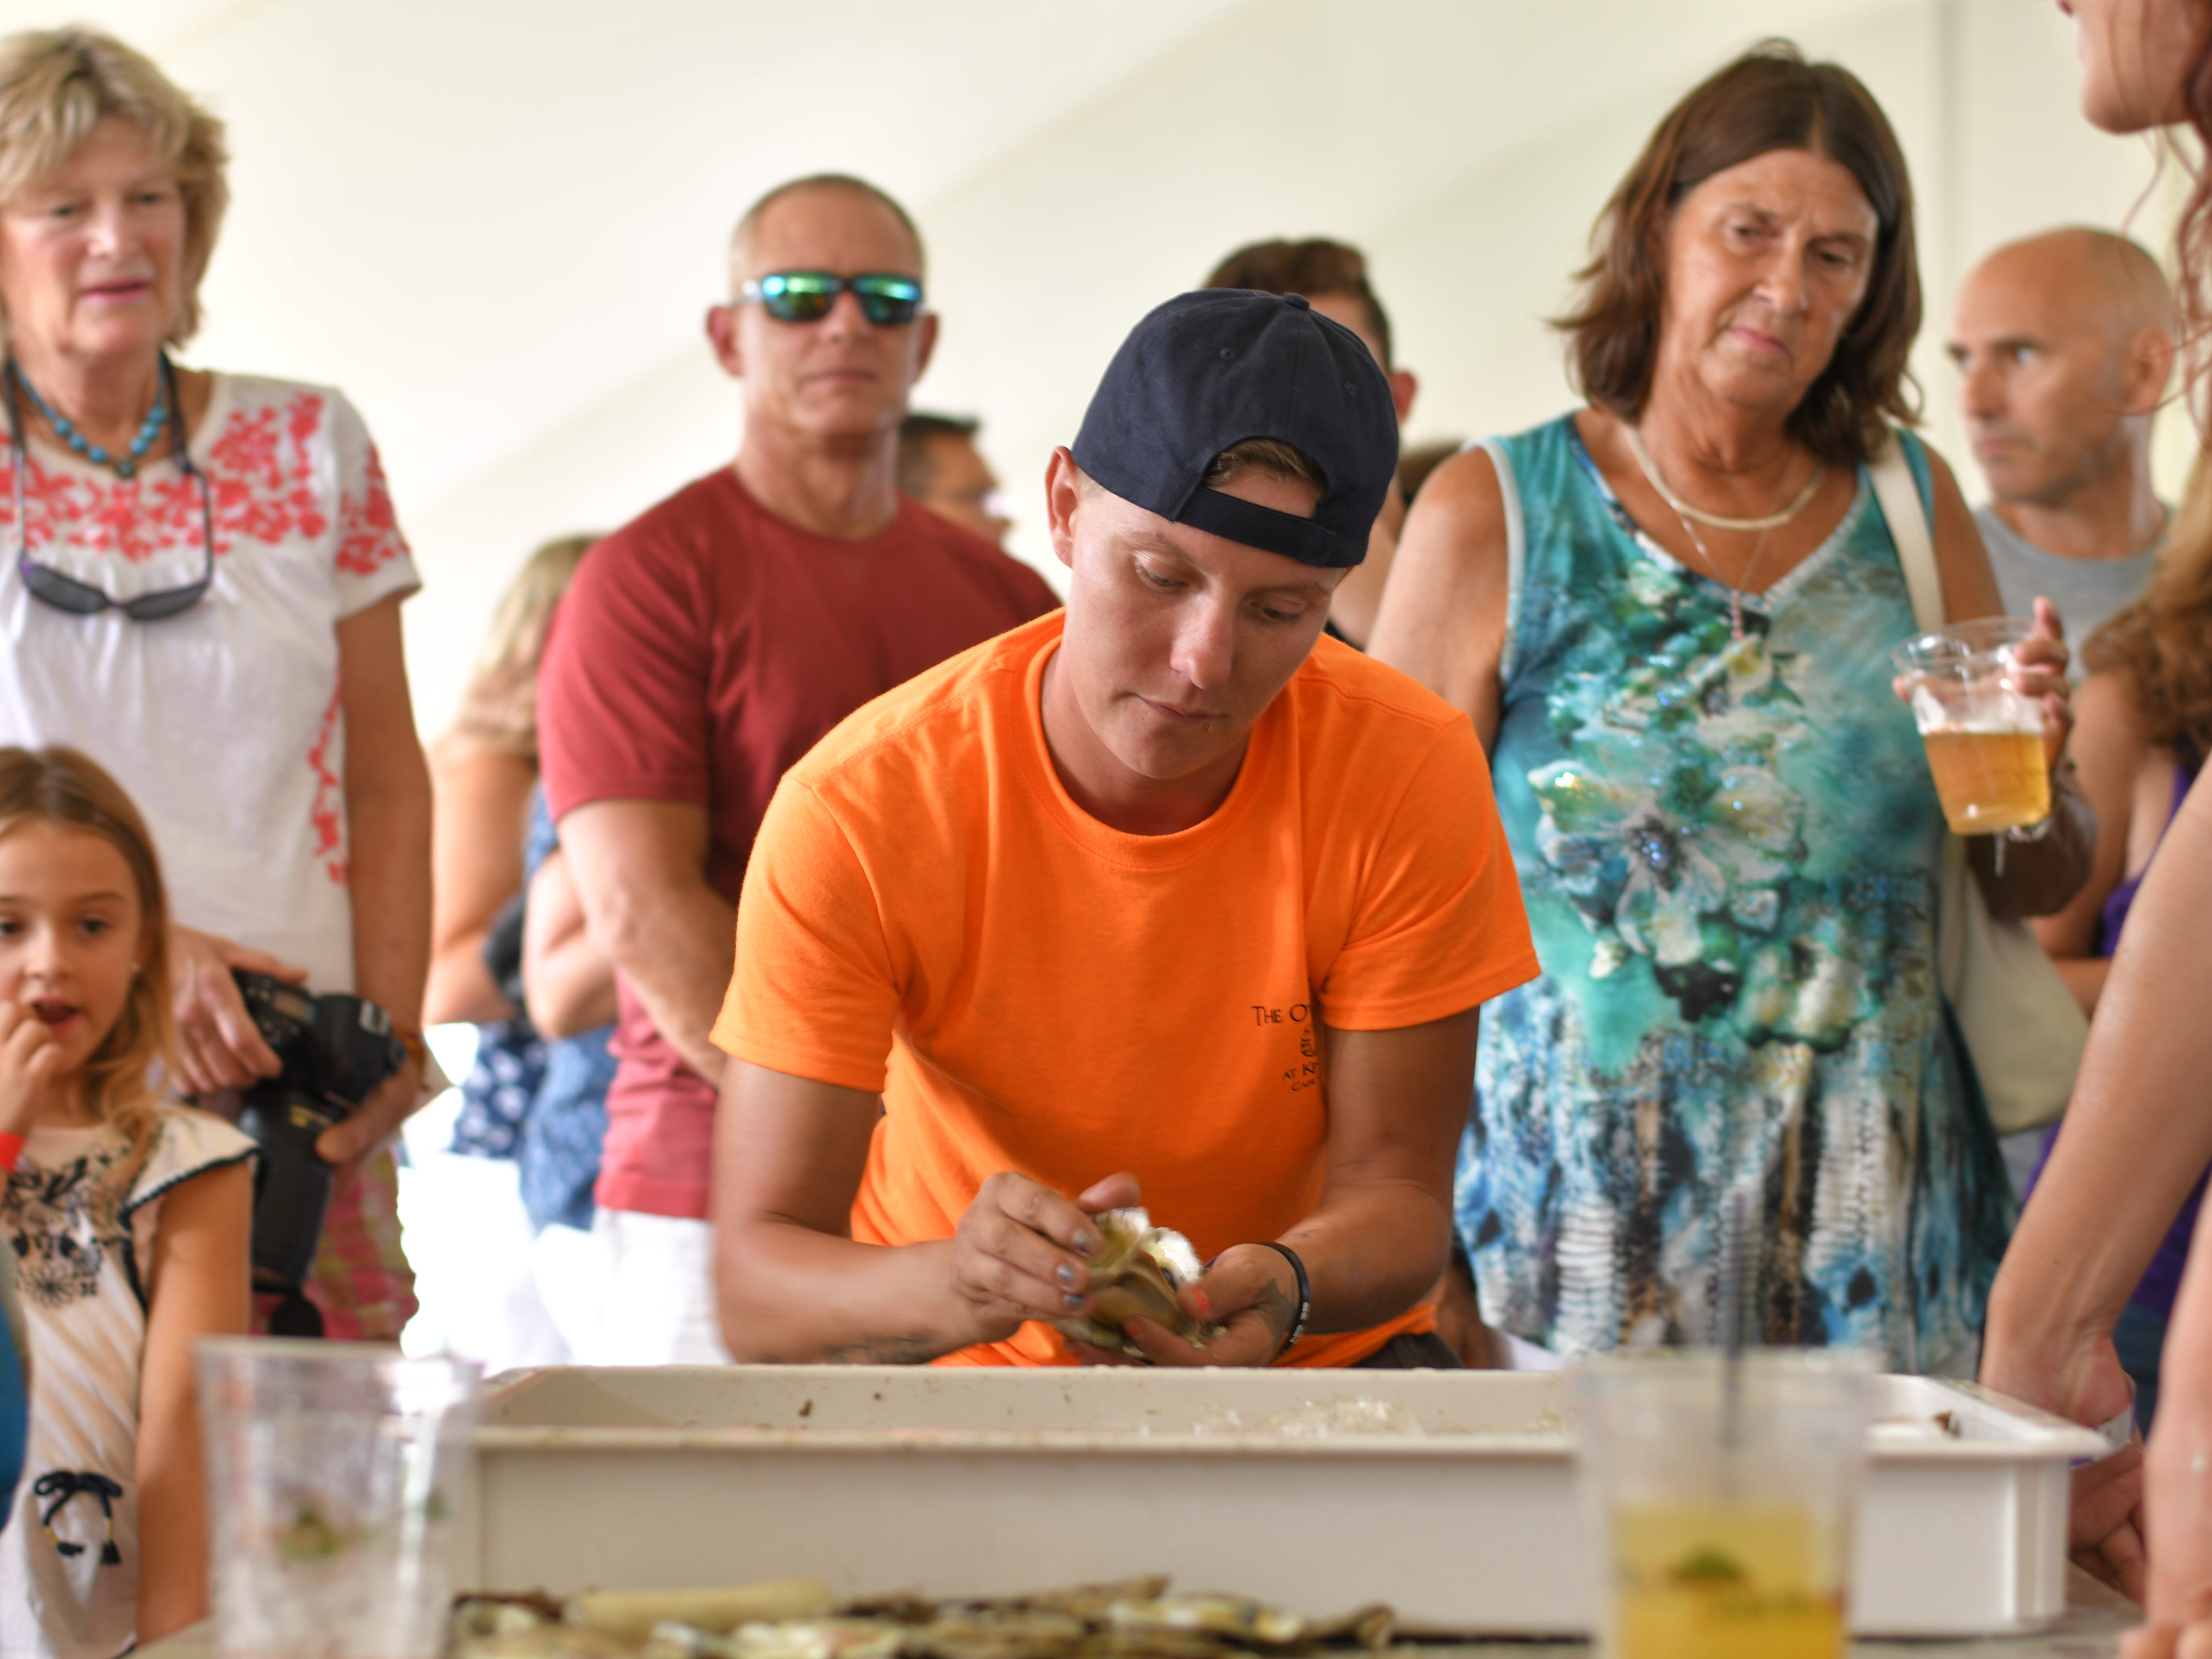 Casey May counts the number of oyster shells after the end of the 3rd Annual Oyster Eating Contest at the Oyster Farm in Cape Charles.